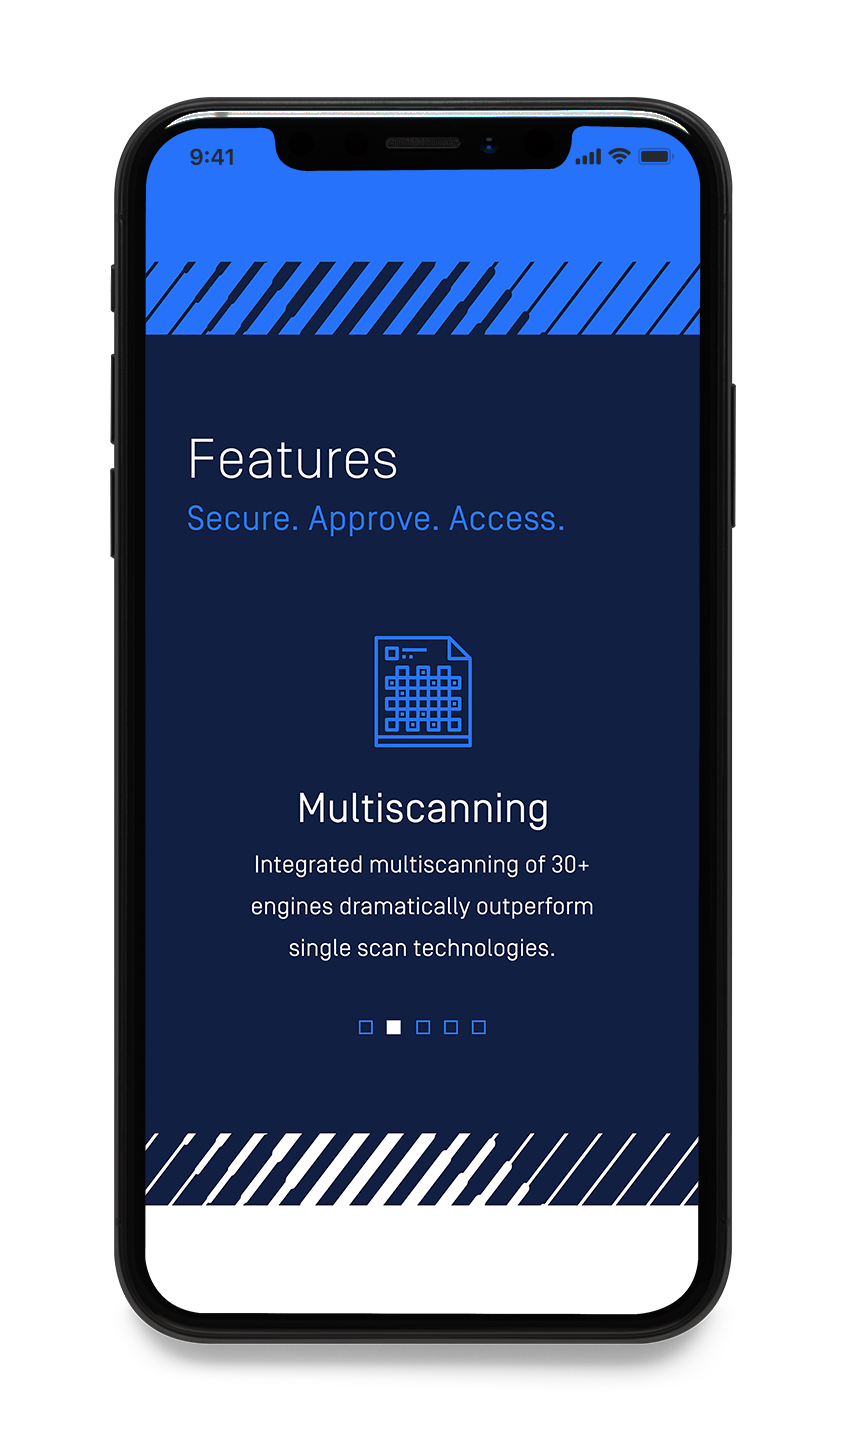 OPSWAT mobile website